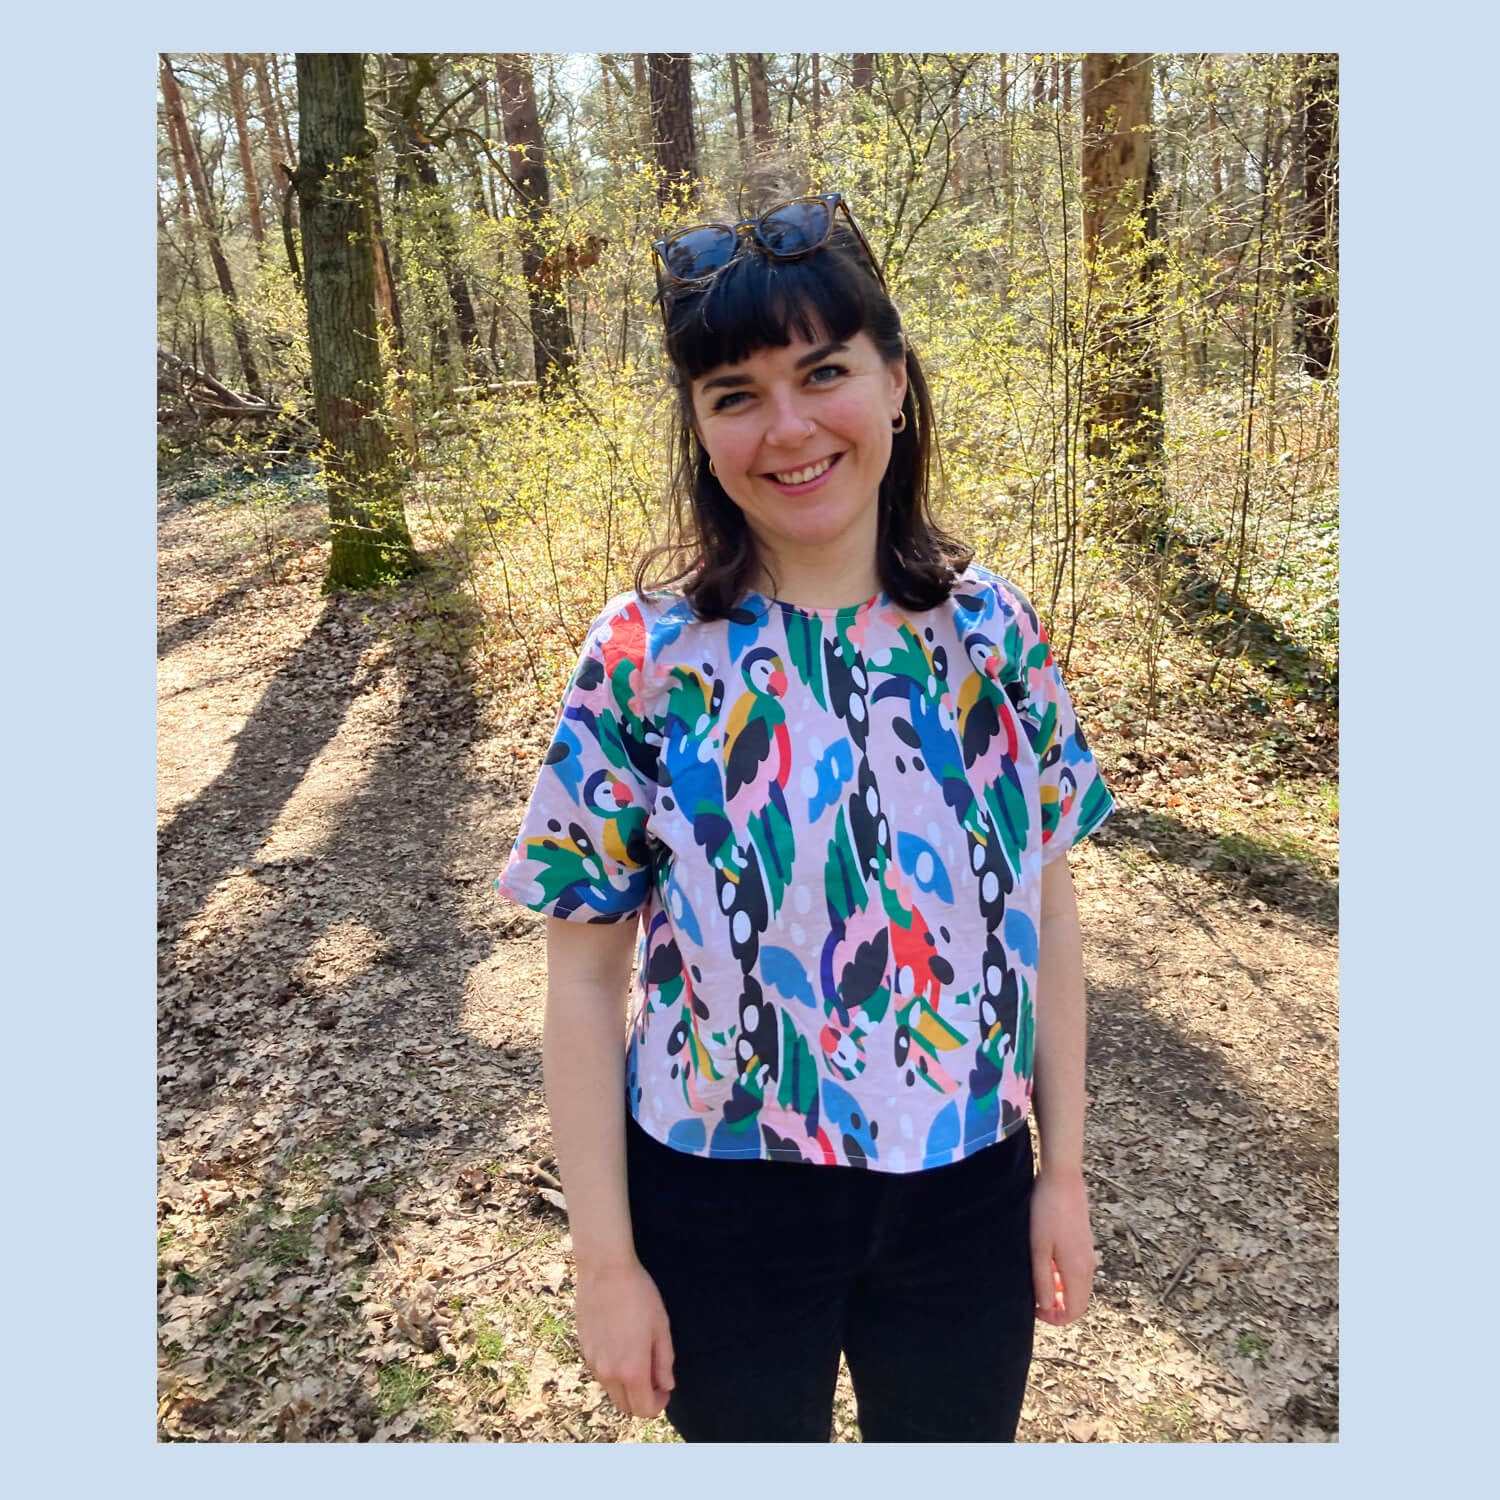 Alice wearing a handmade top in 'Find the Parrots' design